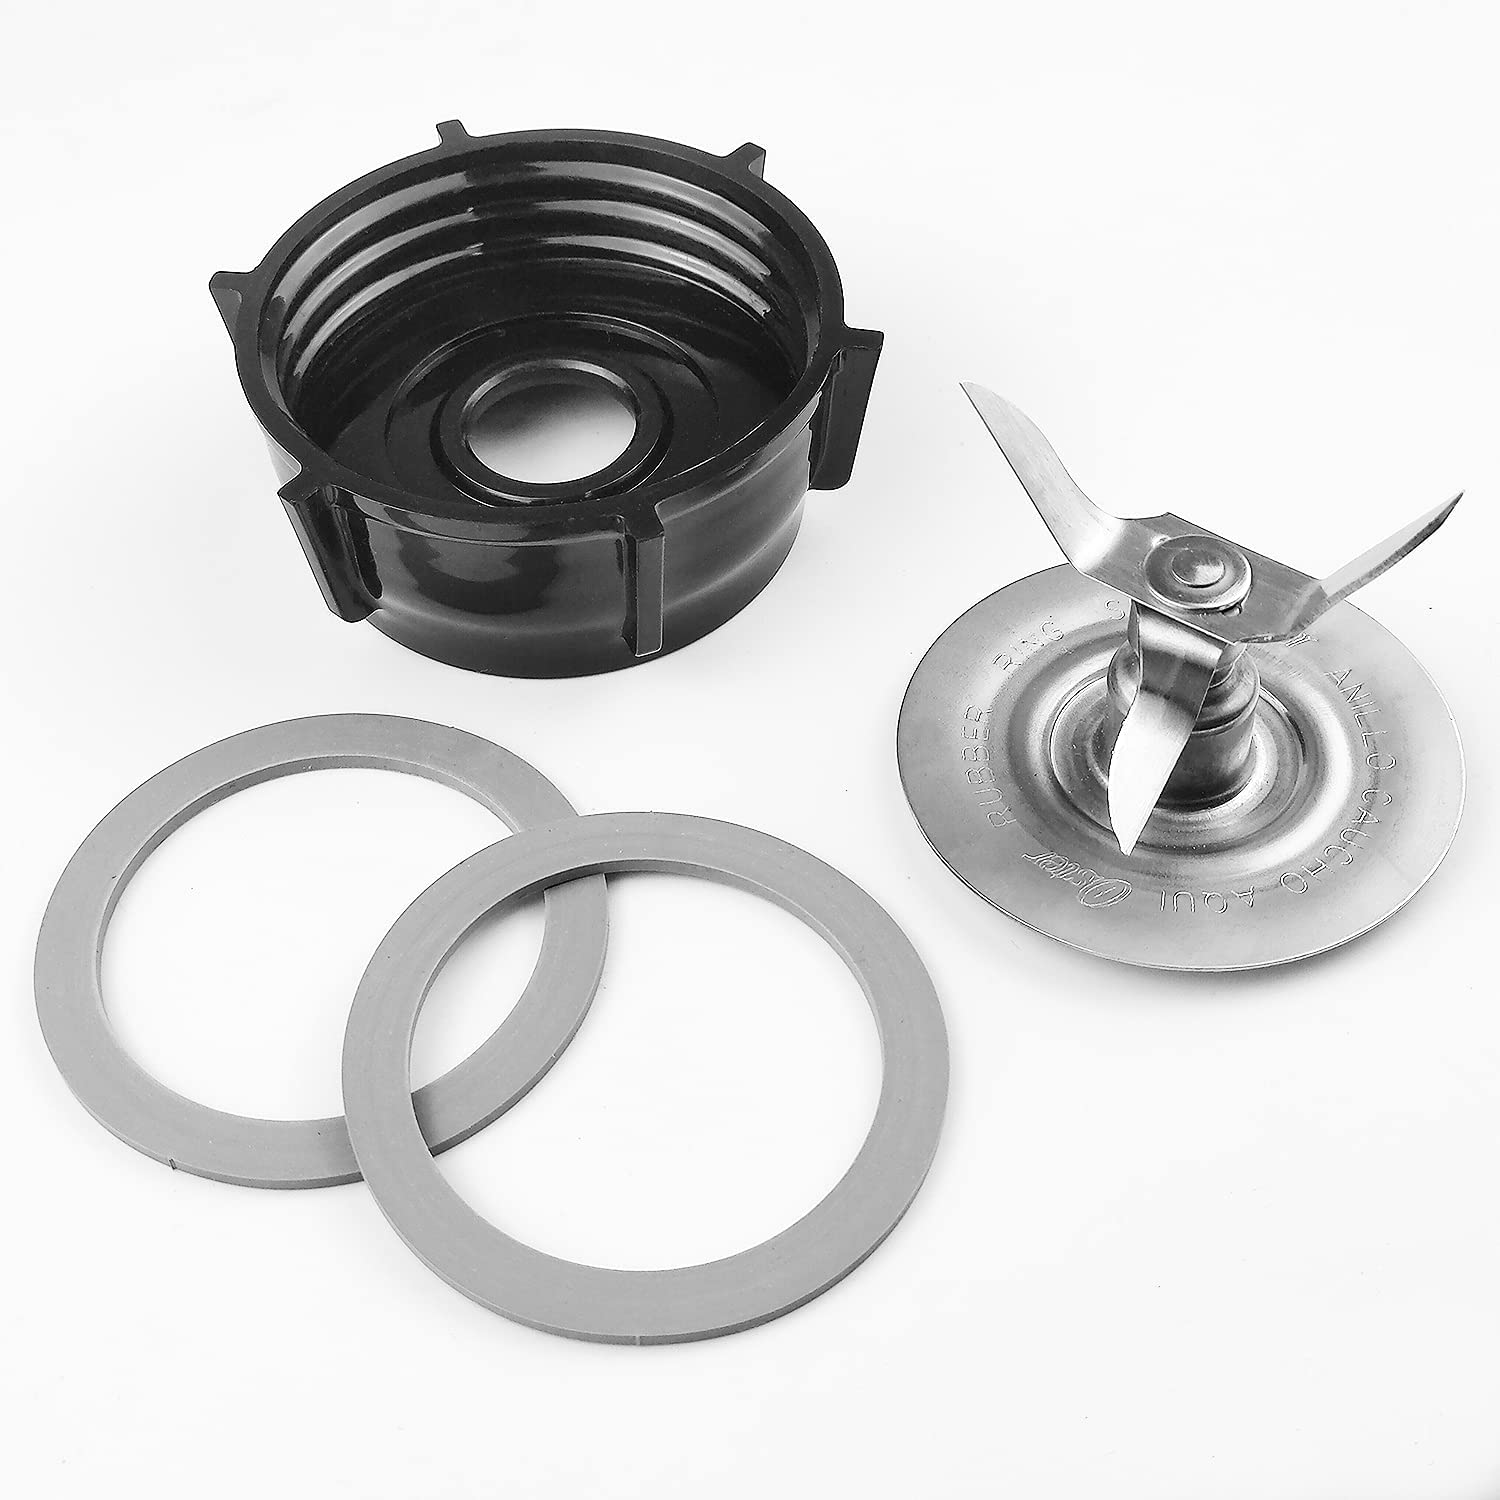 Blender Replacement Parts Compatible with Oster Blender Ice Blades ABSPlastics Base Stainless Steel Ice Blade and Two Rubber O Ring Seal Gasket,Compatible with Oster Osterizer Blender Accessories